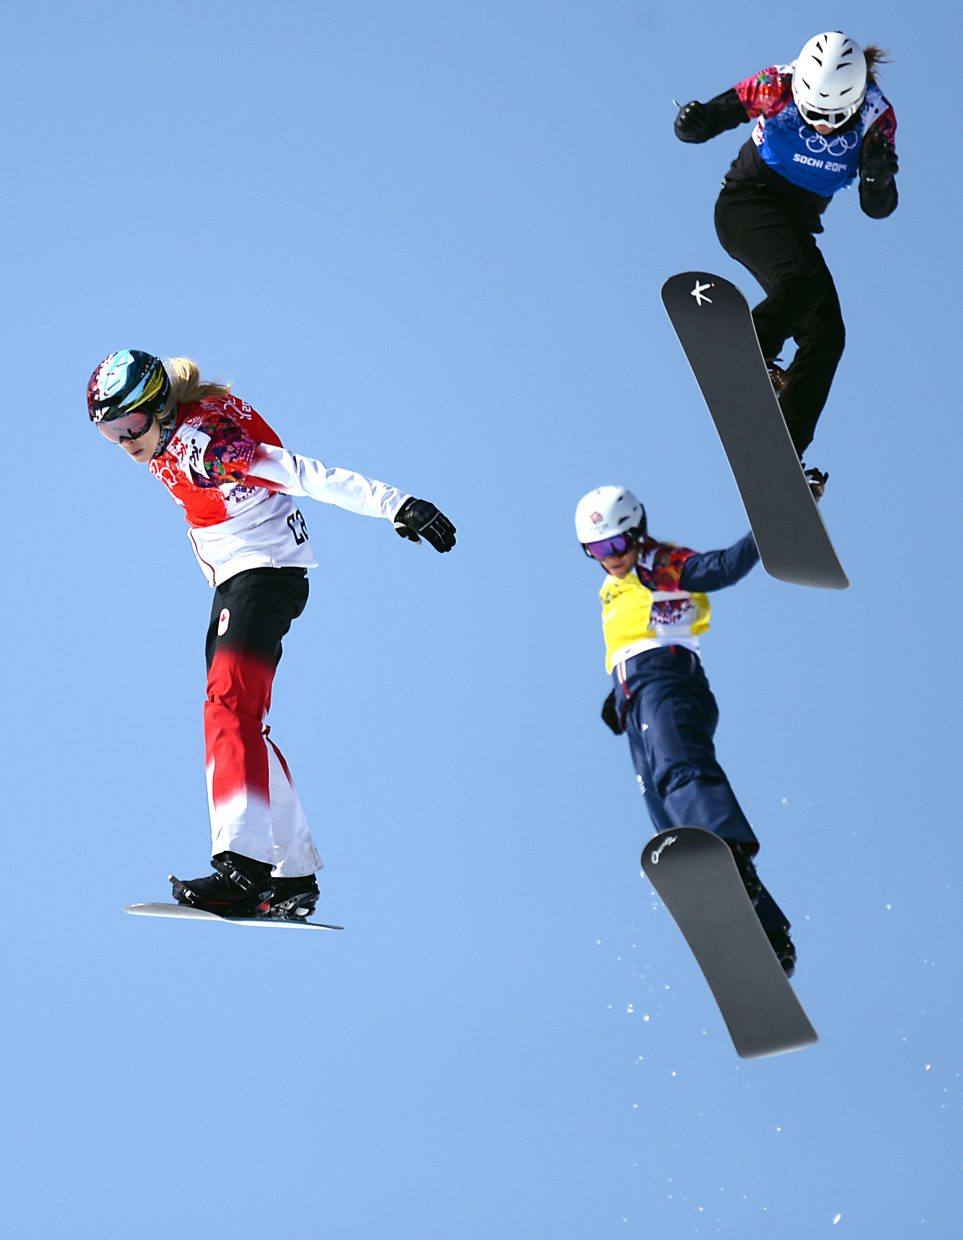 Dominique Maltais leads her quarterfinals heat over the jump in front of the finish line Sunday at the women's snowboard cross event.